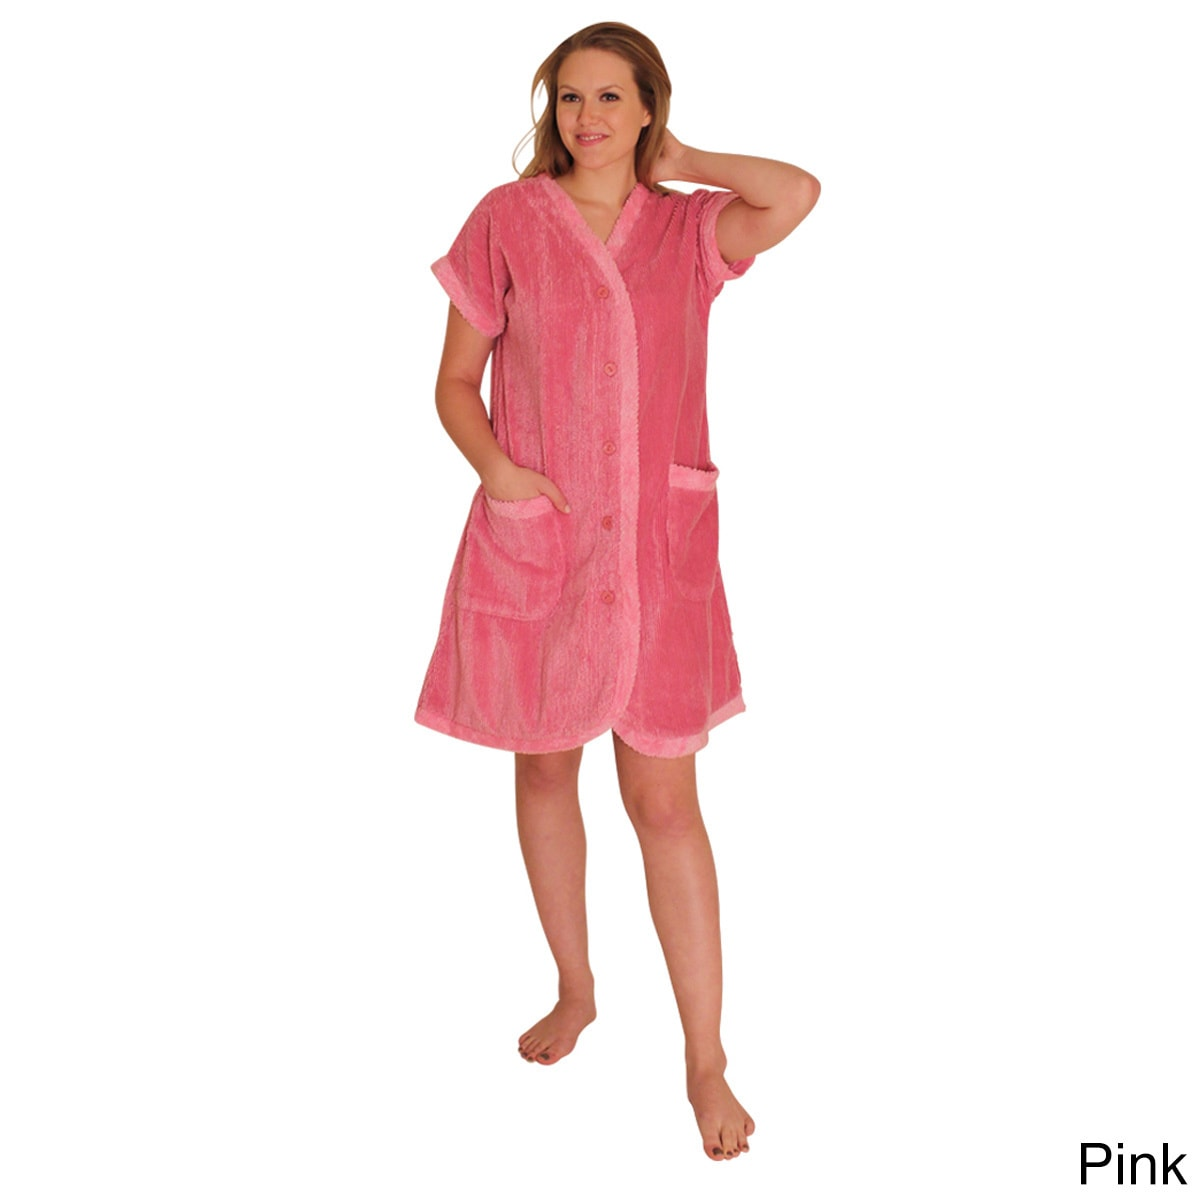 NDK New York Women's Chenille Robe (3XL, Pink), Size 3X (...